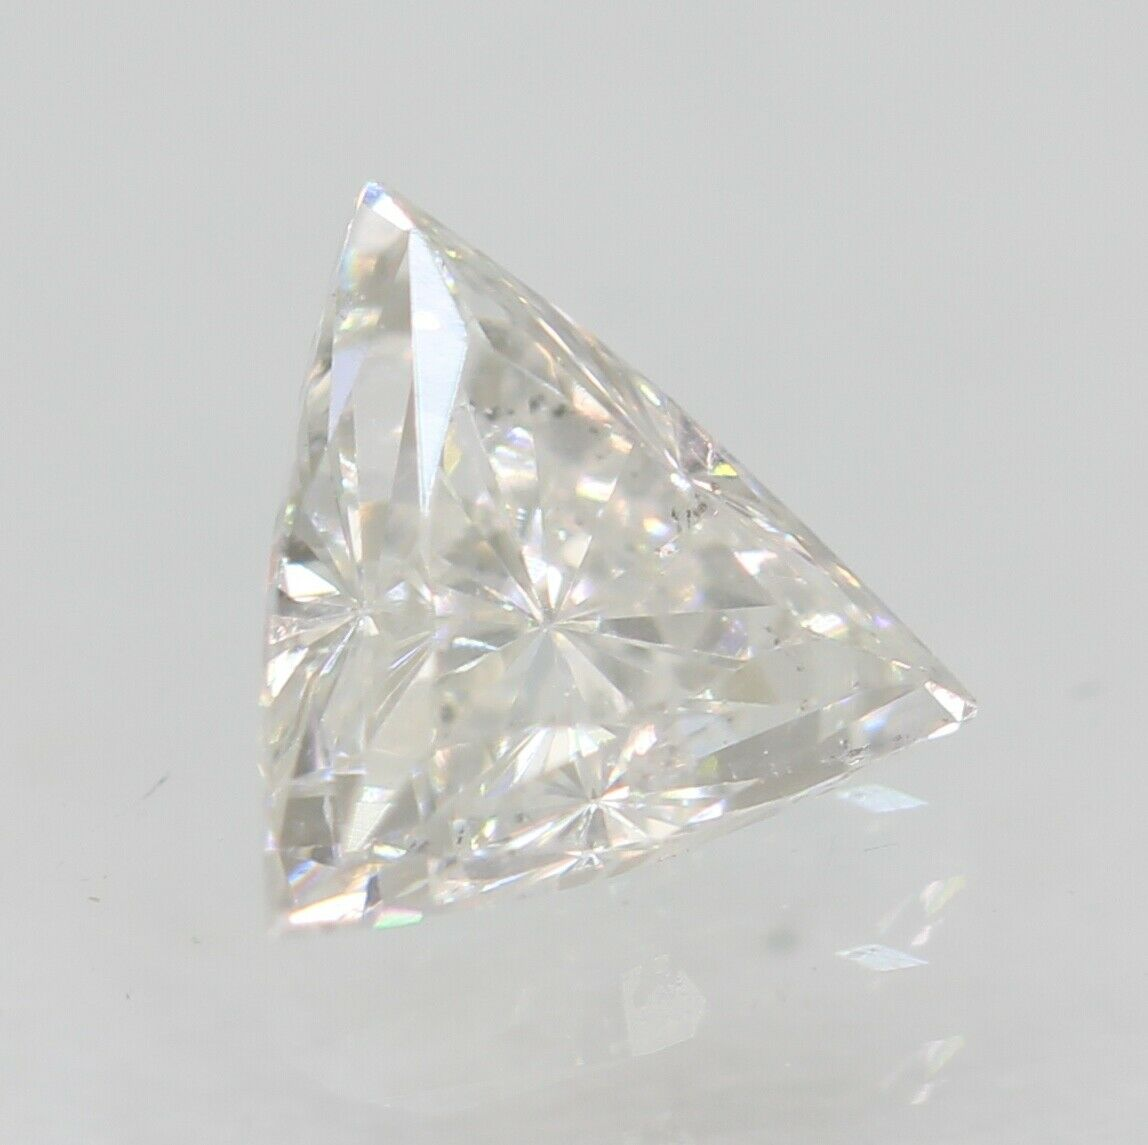 0.28 Carat D Colour SI2 Triangle Natural Loose Diamond For Jewellery 4.55X4.44mm